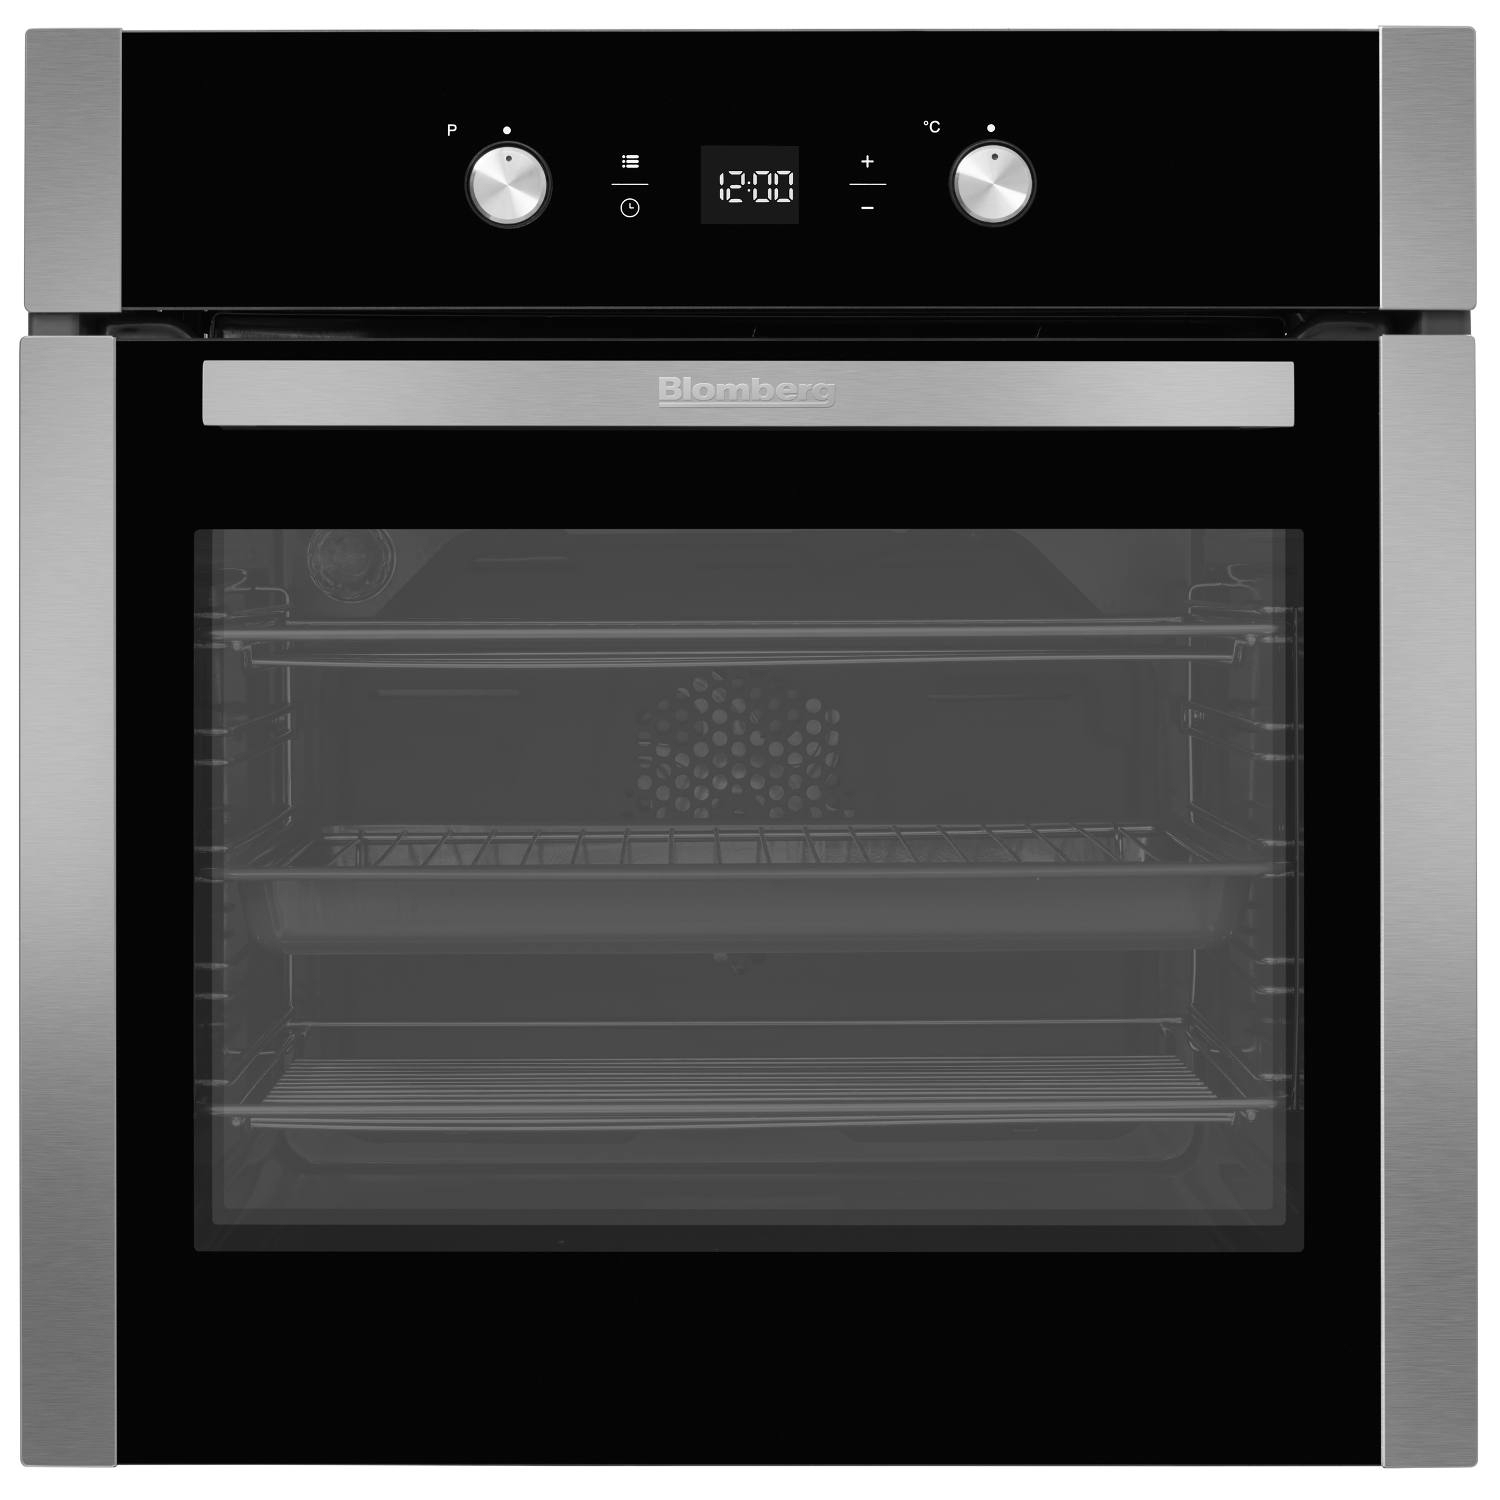 Blomberg OEN9302X 59.4cm Built Electric Single Oven - Stainless Steel - 0